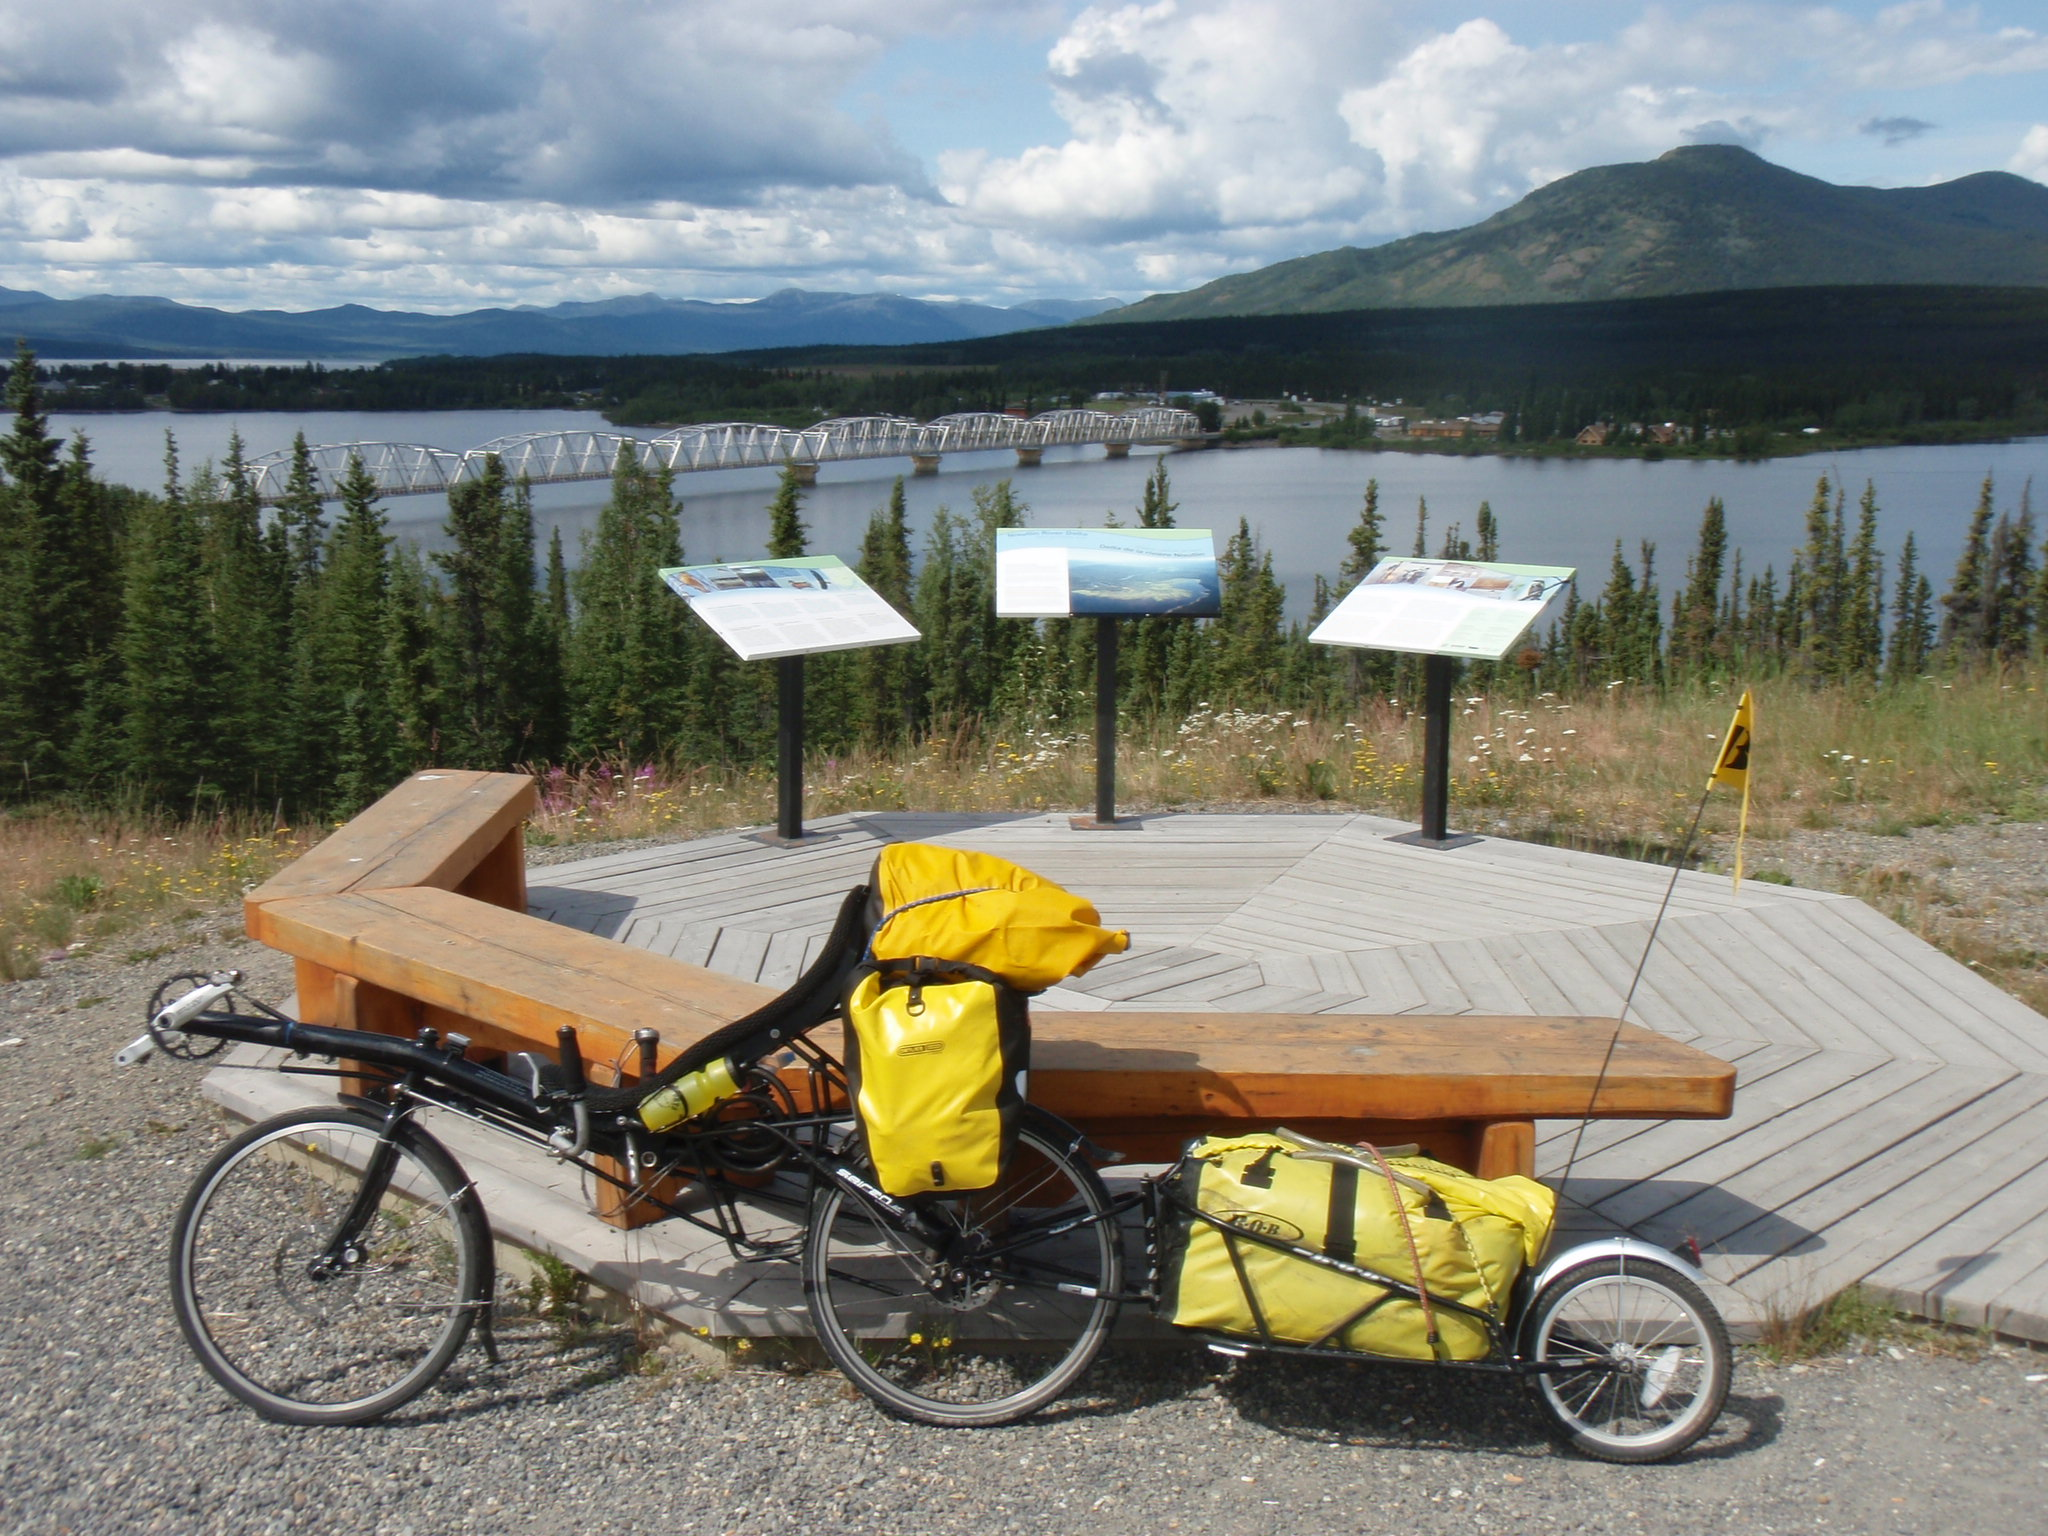 Bike at Teslin overlook